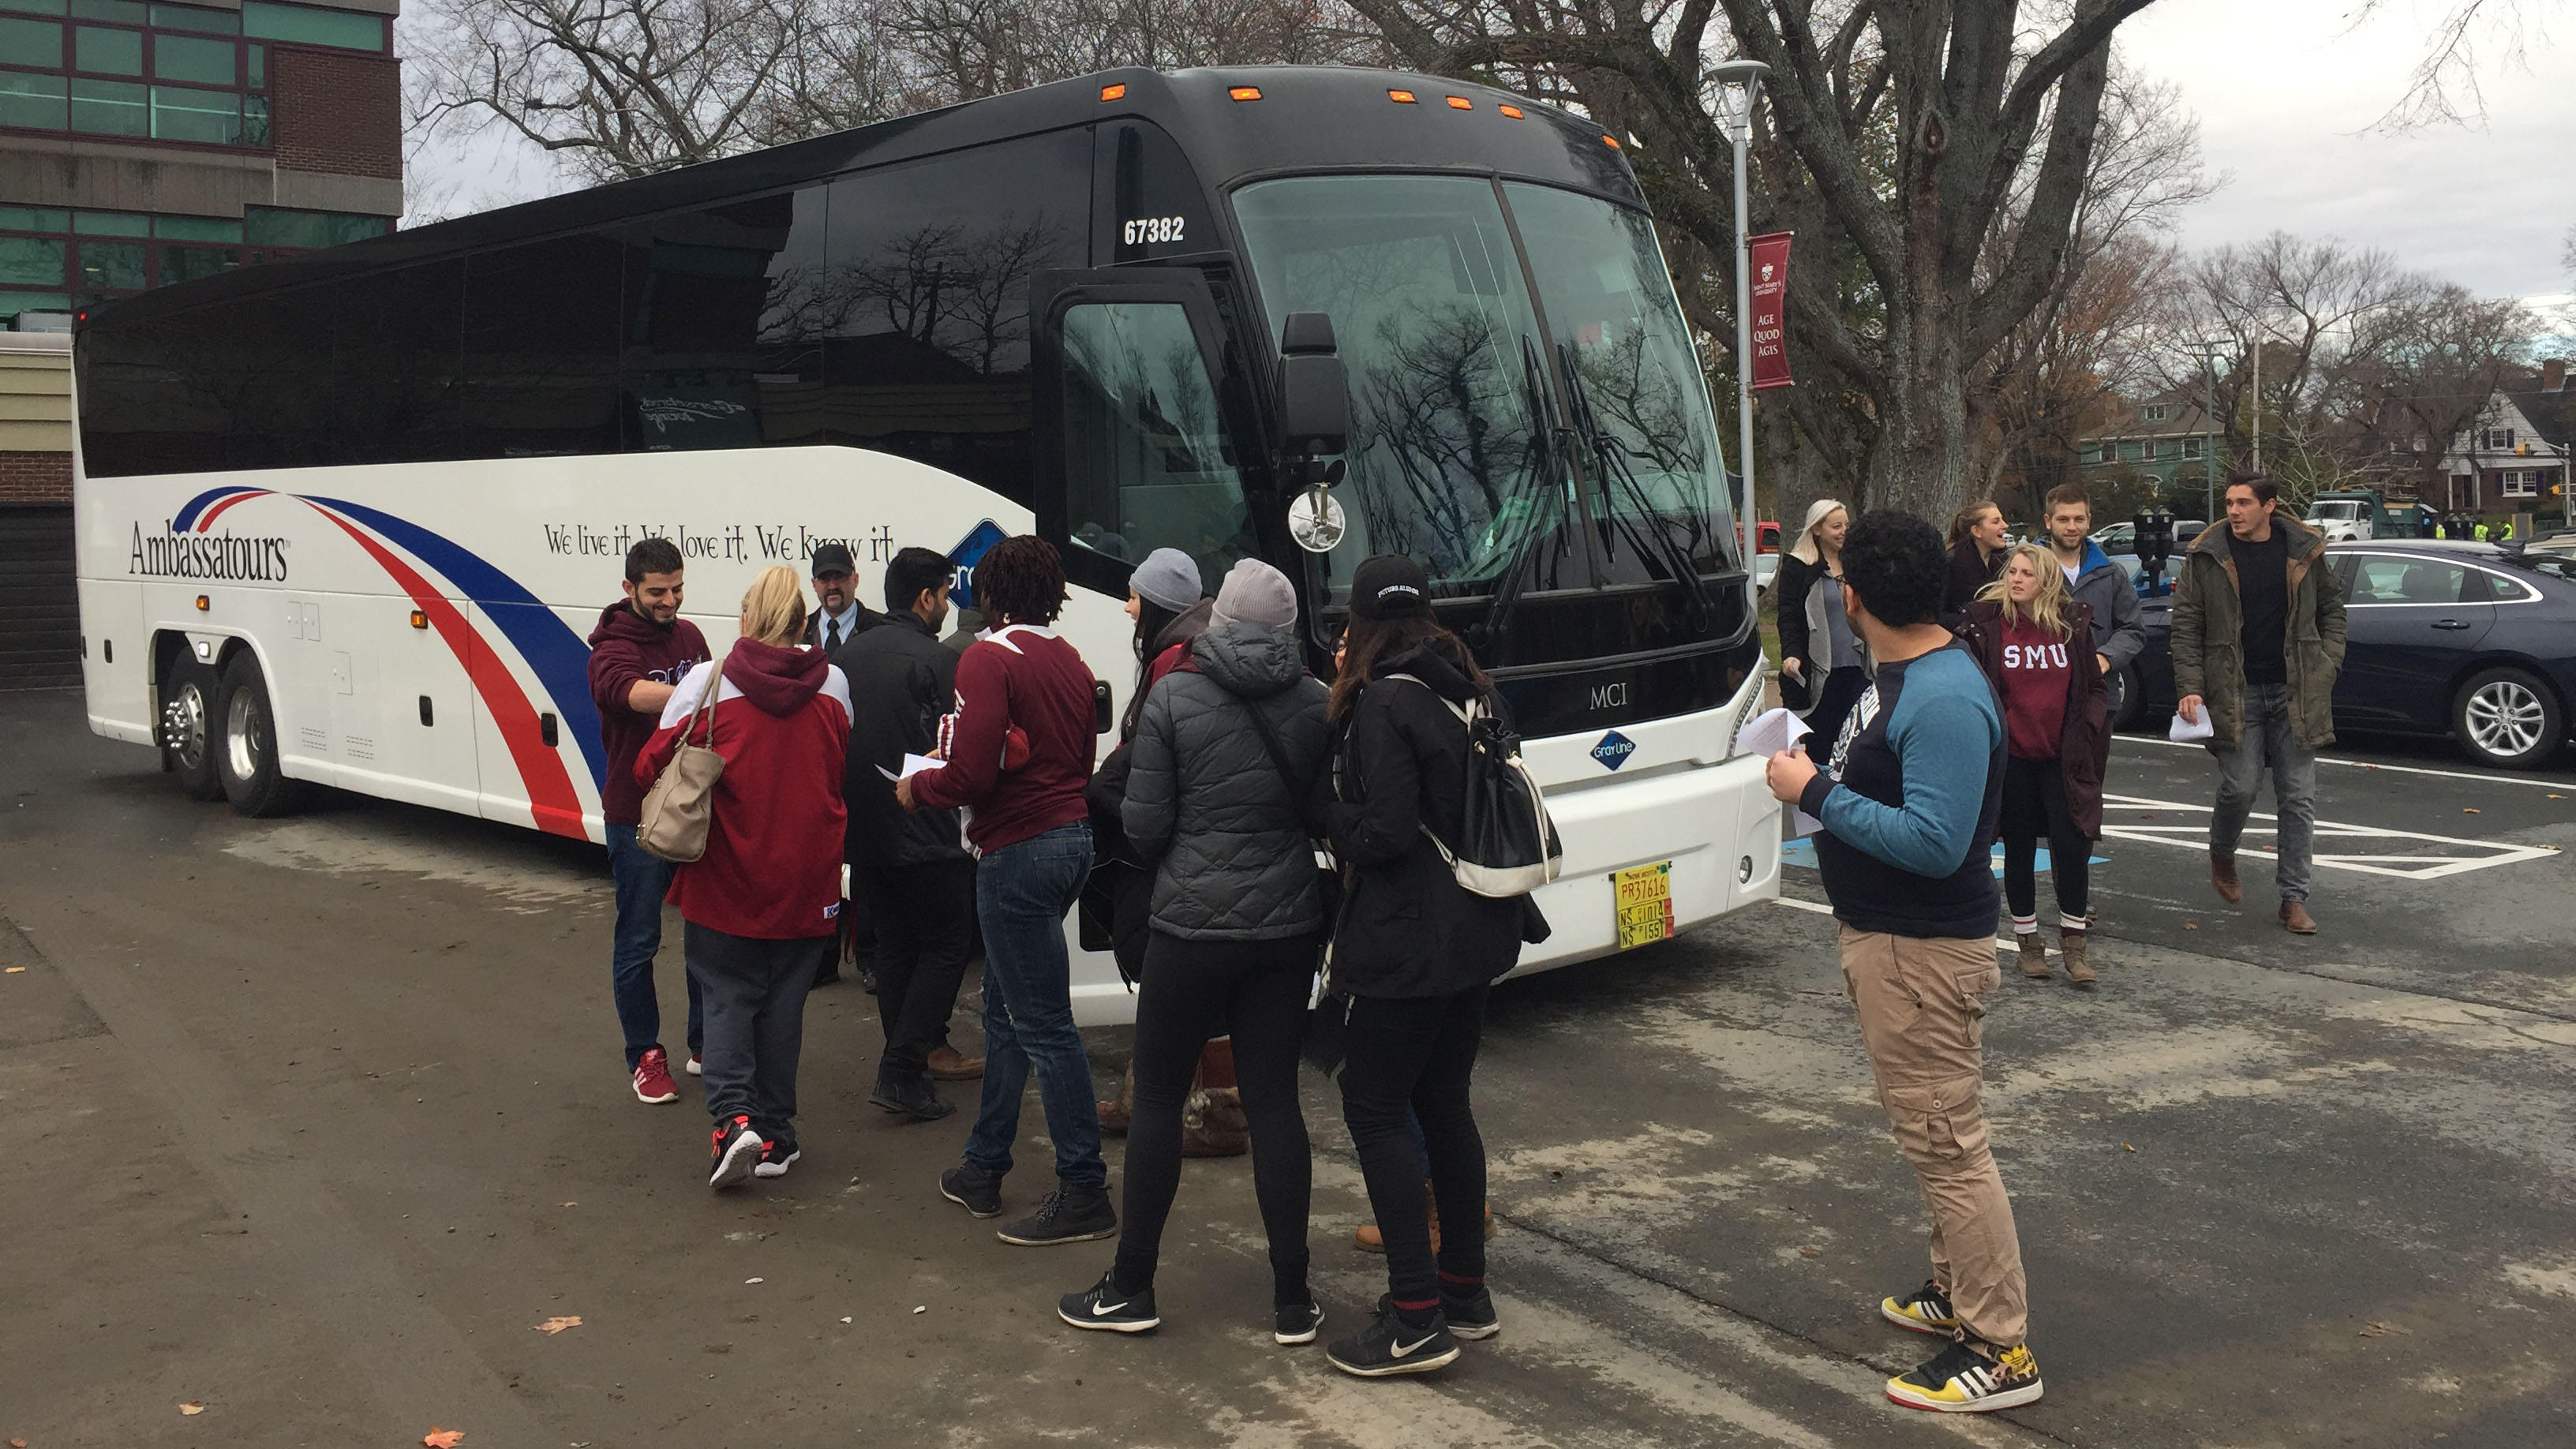 SMU fans board a bus to Acadia to cheer on the Huskies